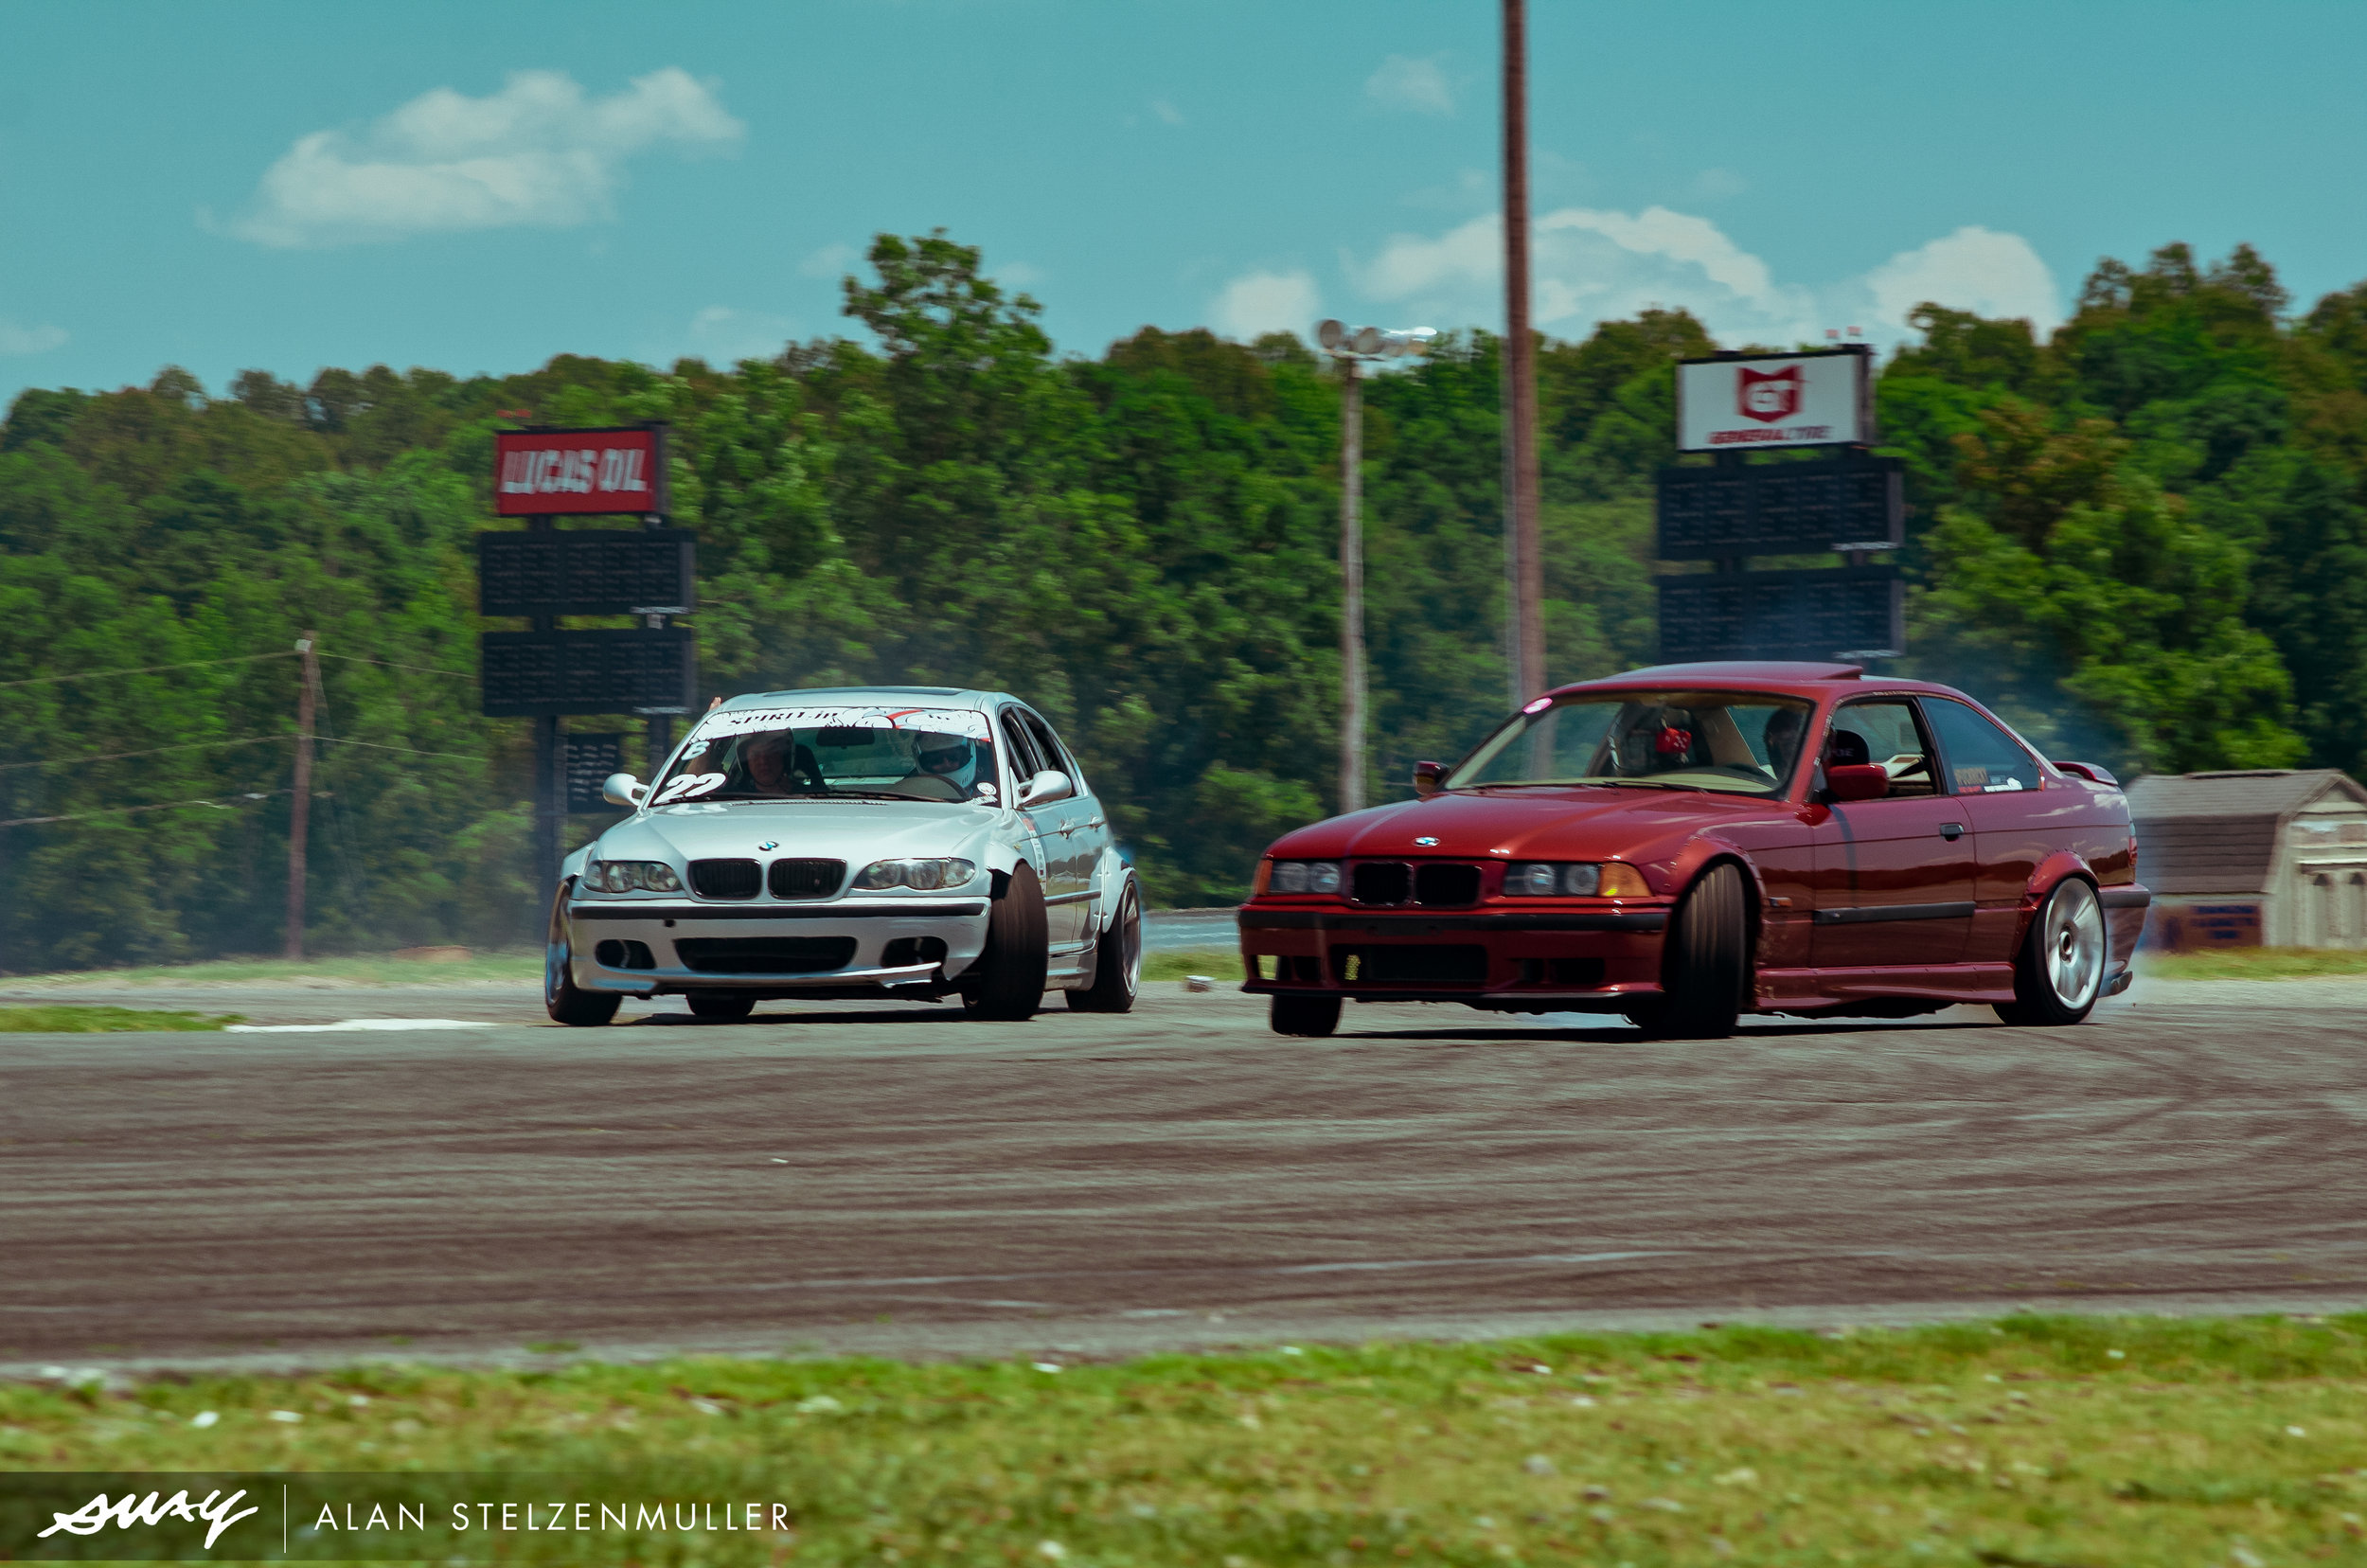 BMW bros battling it out